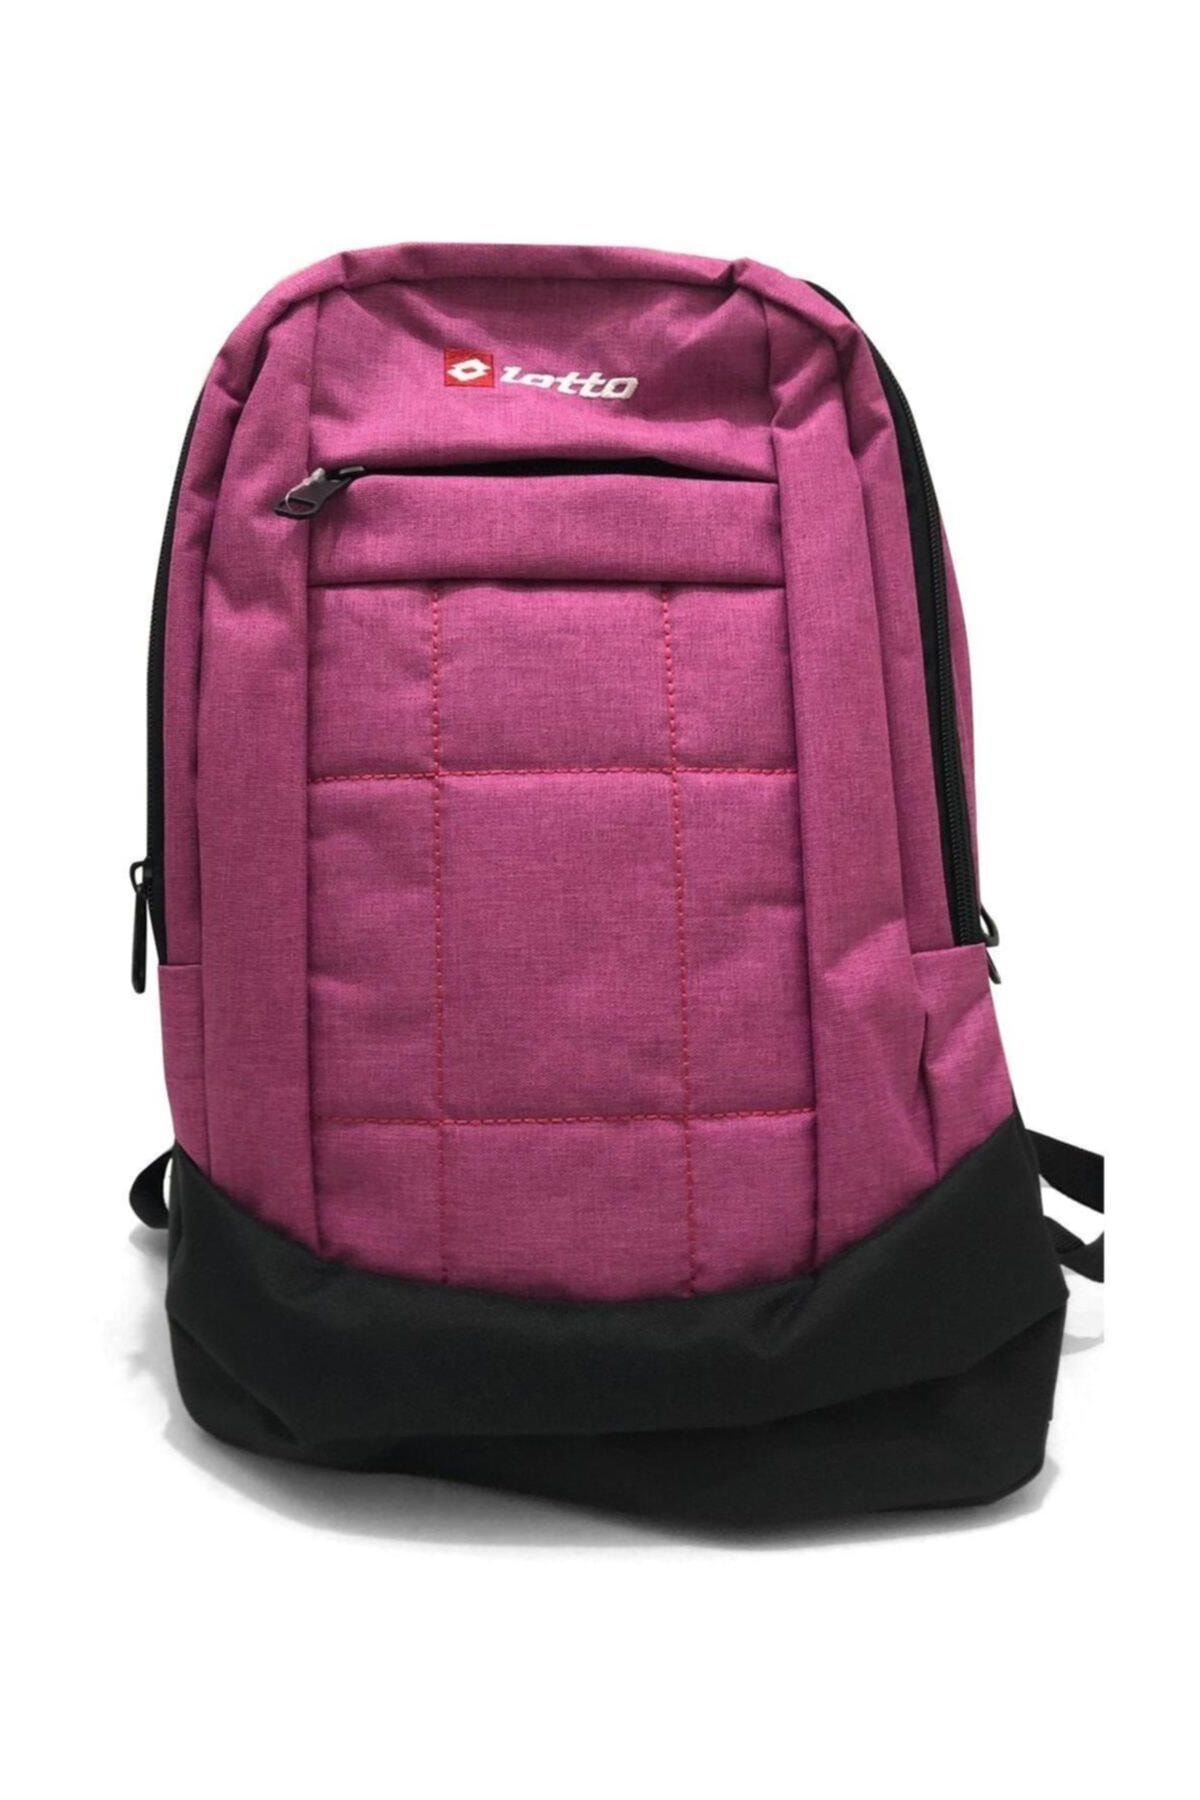 Lotto Aboott Backpack Okul Sırt Çantası - R7839 1